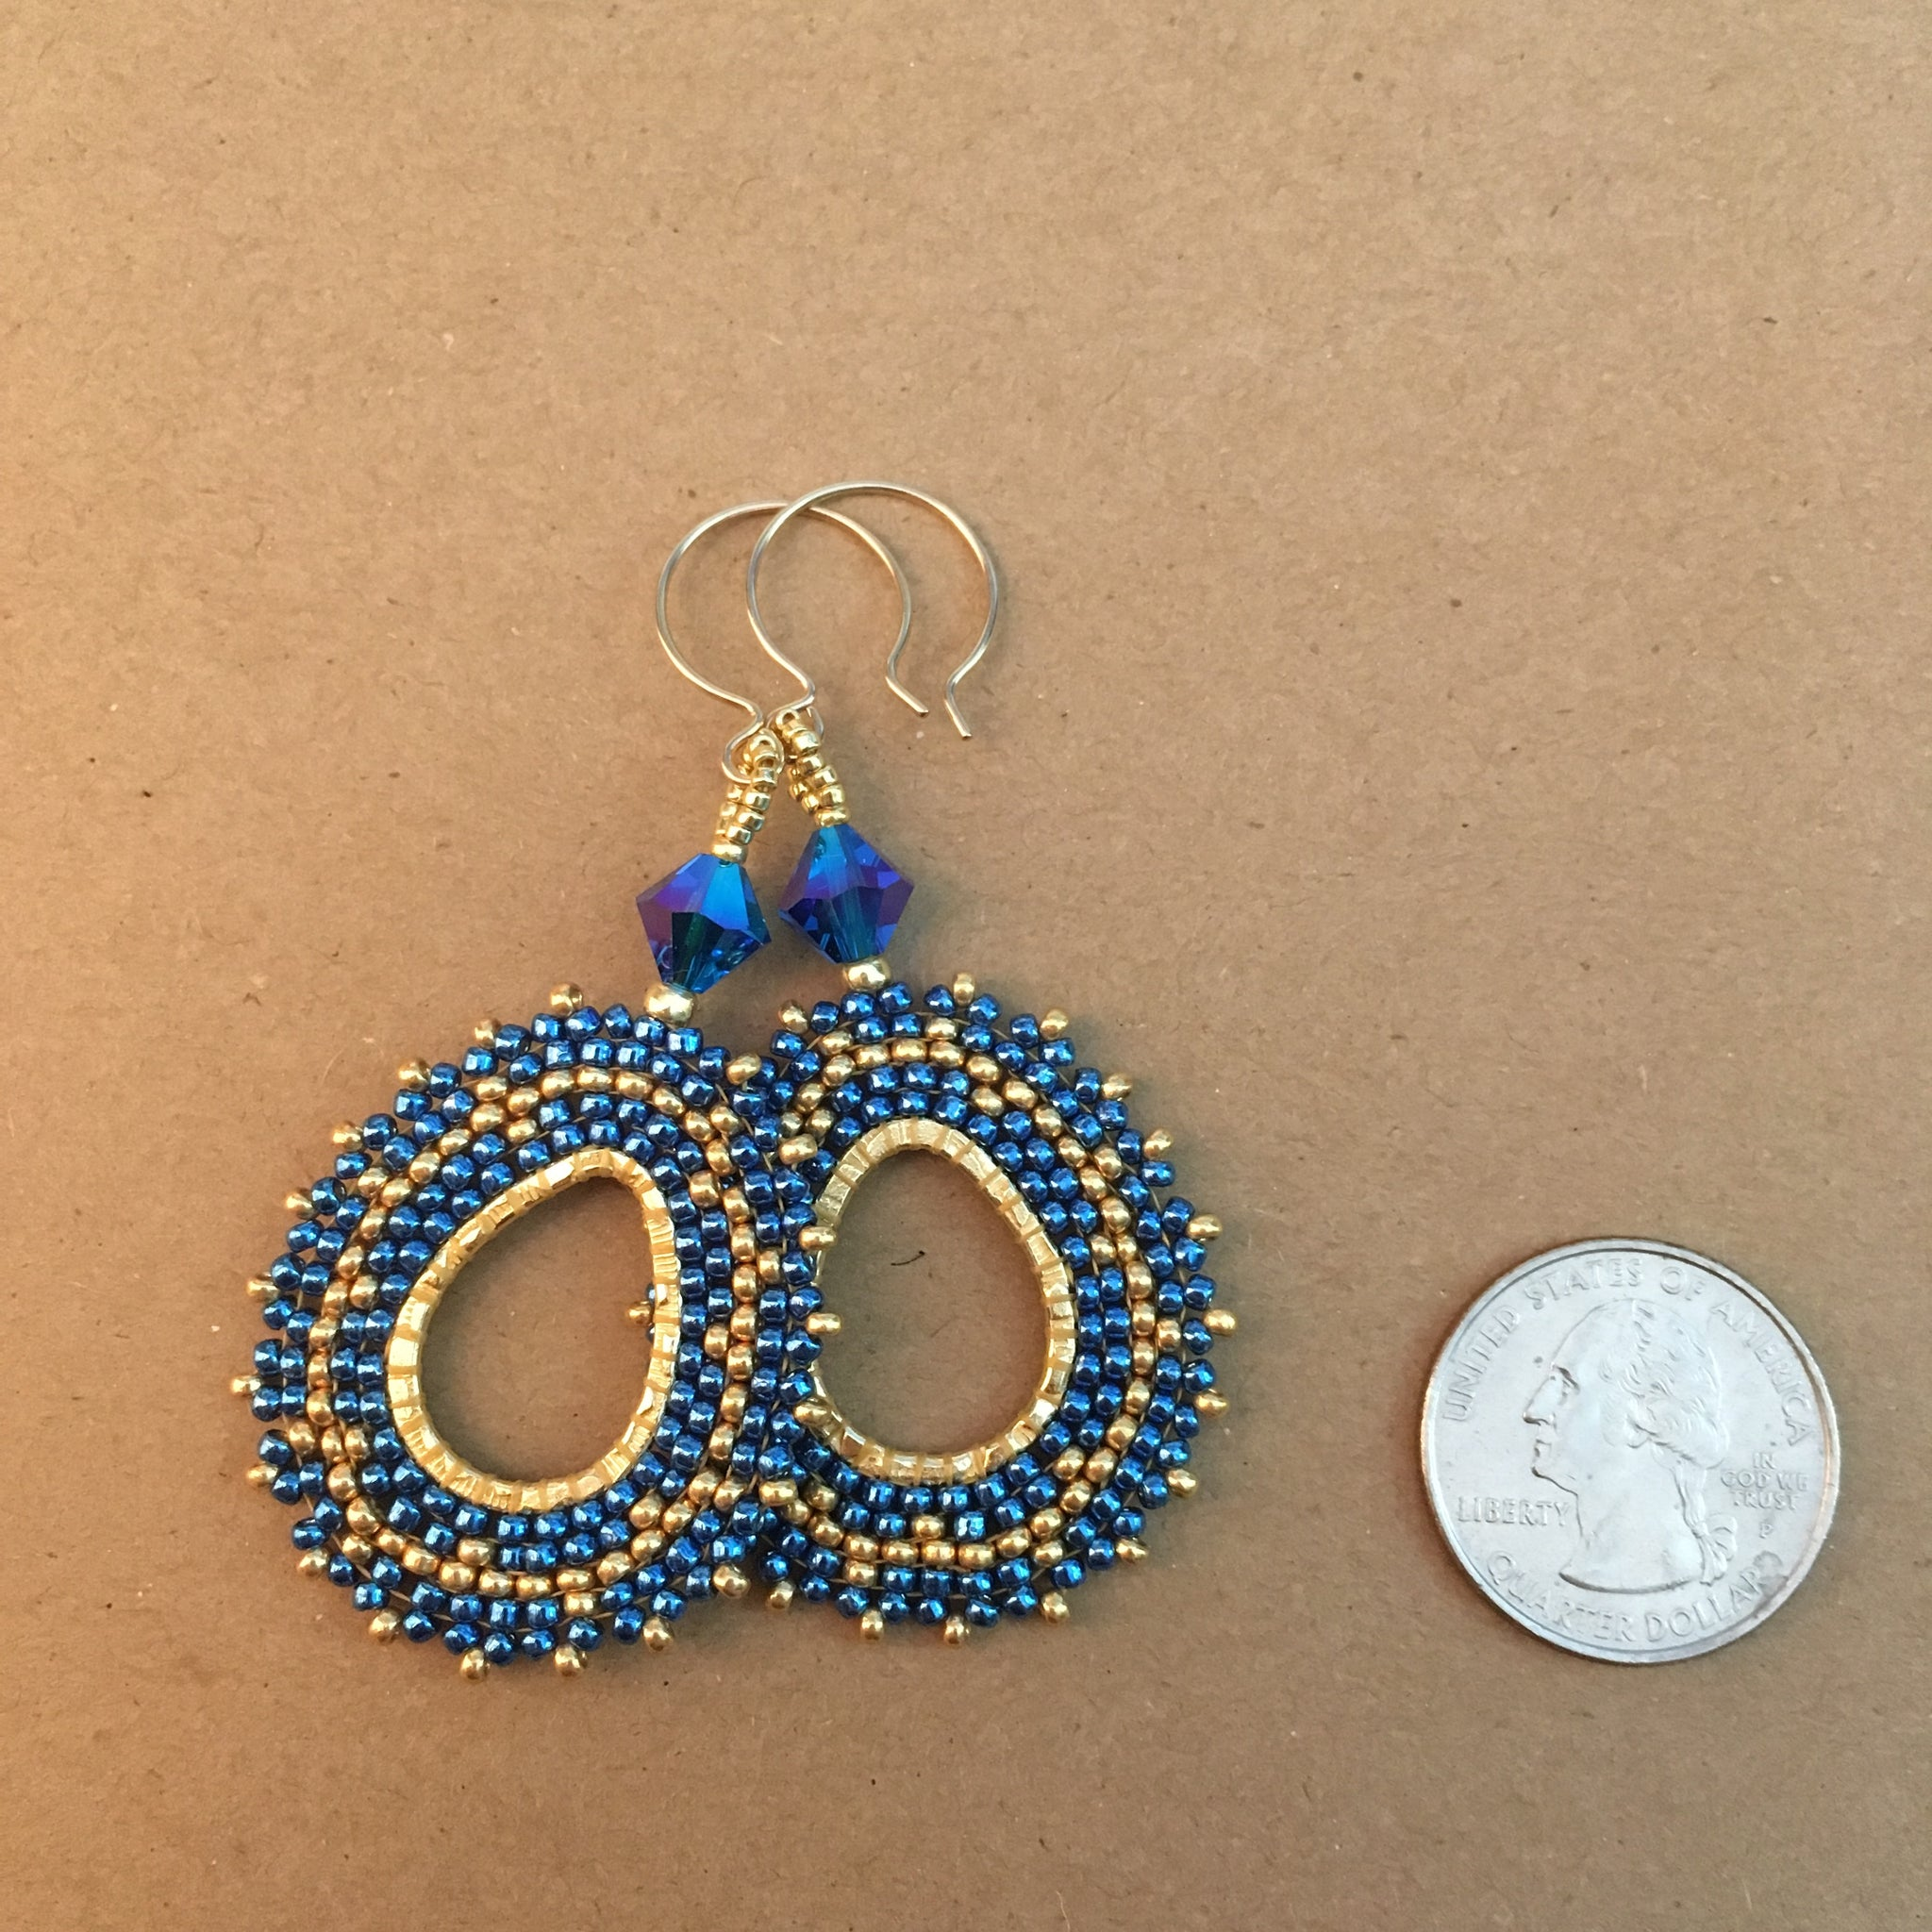 Bright Blue and Gold Oval Hoops with Swarovski™ Crystals